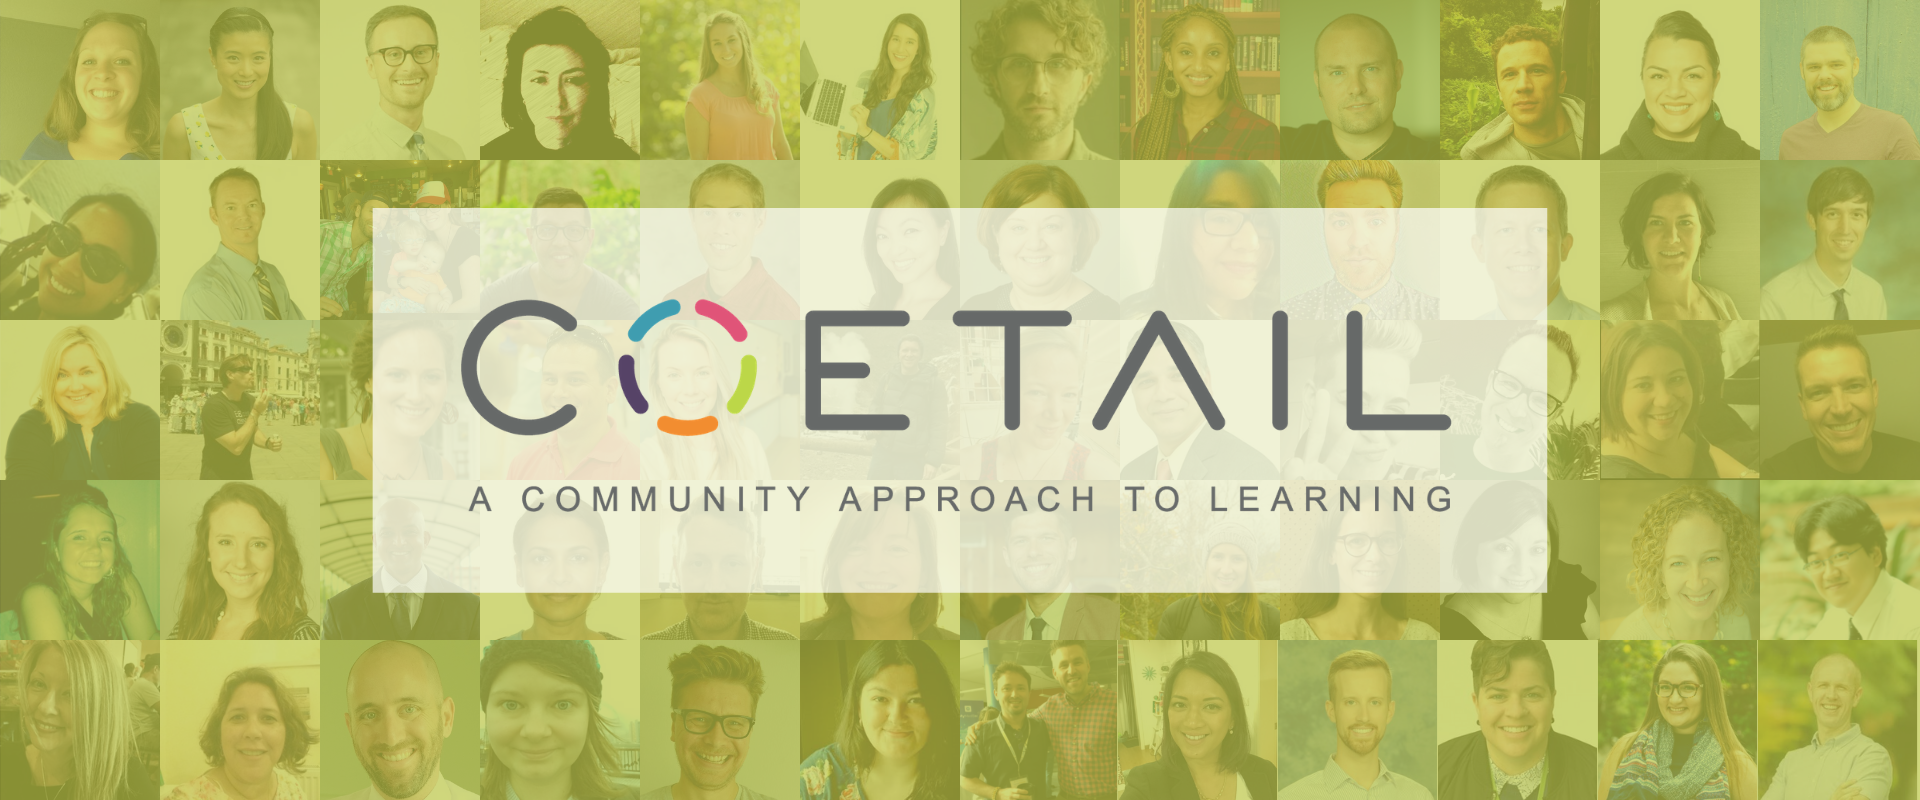 COETAIL: A Community Approach to Learning